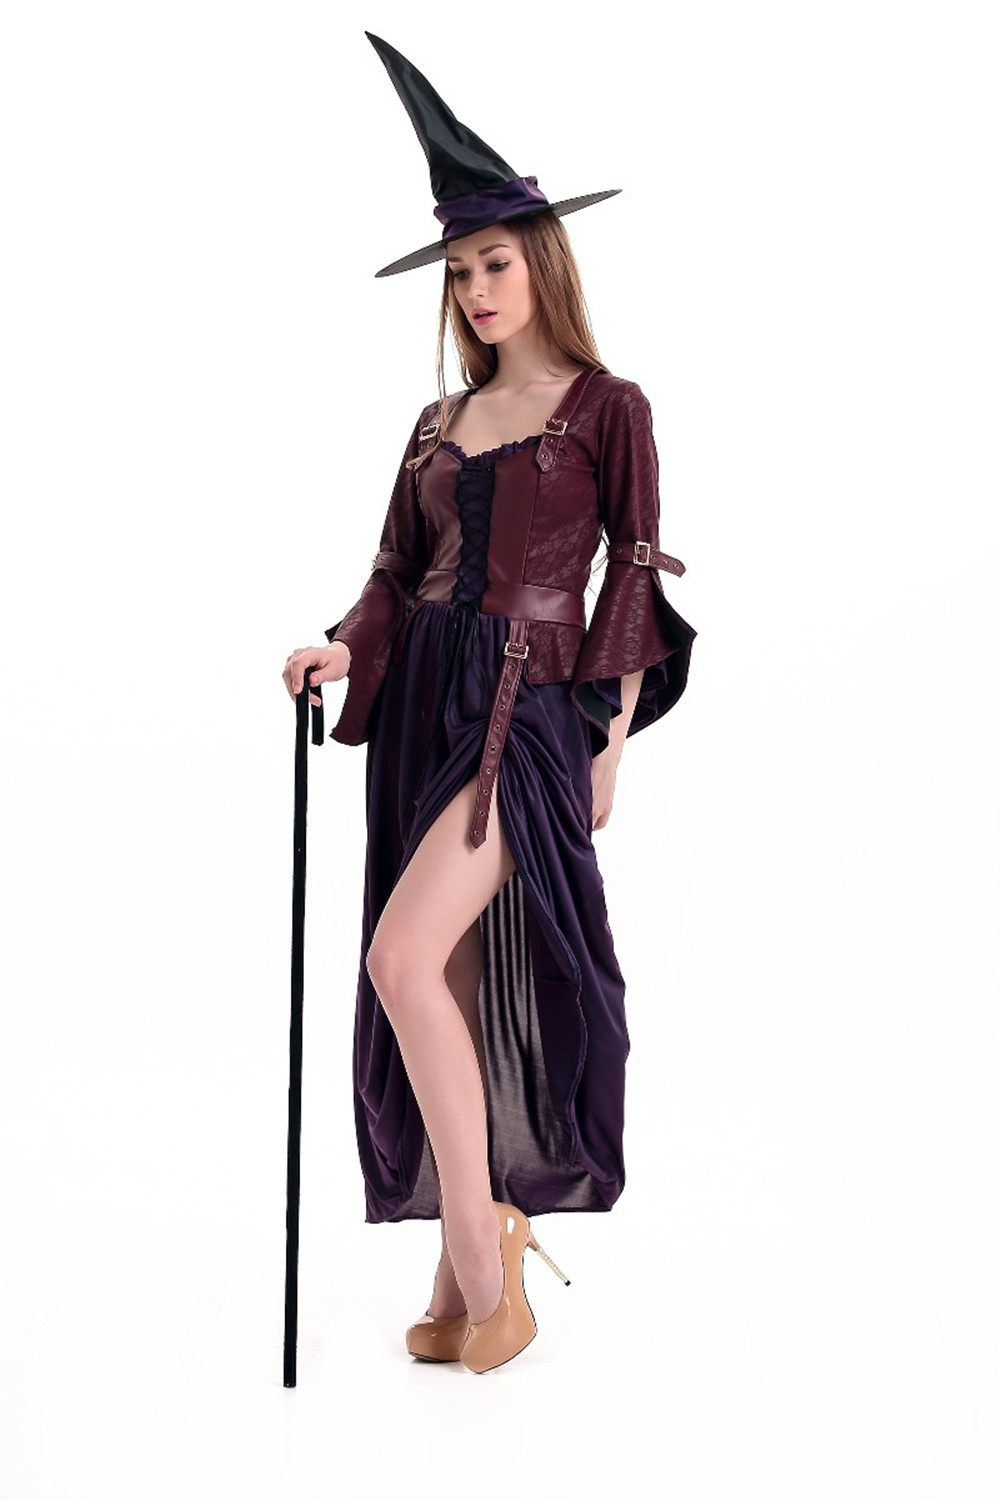 nºsuper selection devil witch woman costumes for sale salem witch